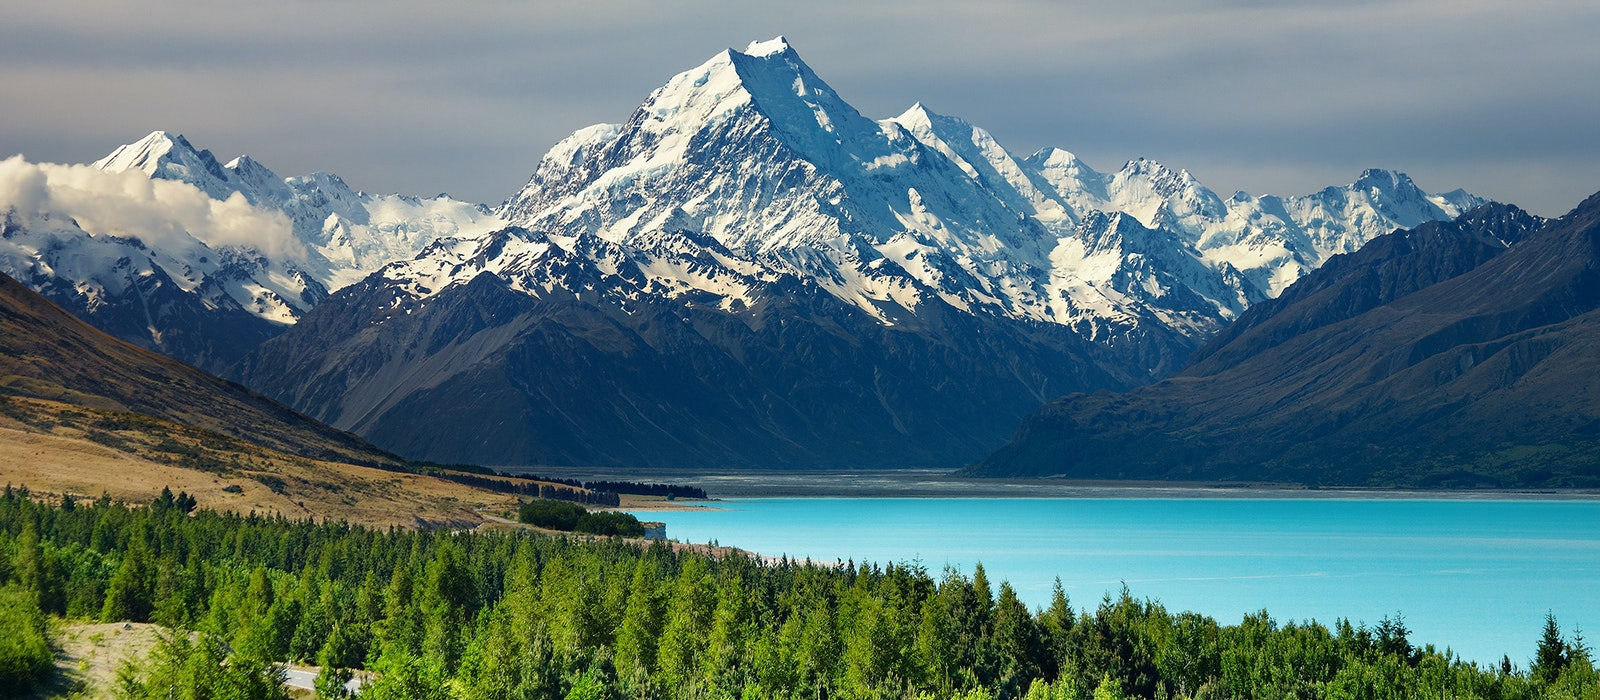 The new travel authorization and tourist tax affects U.S. citizens visiting New Zealand starting October 1, 2019.